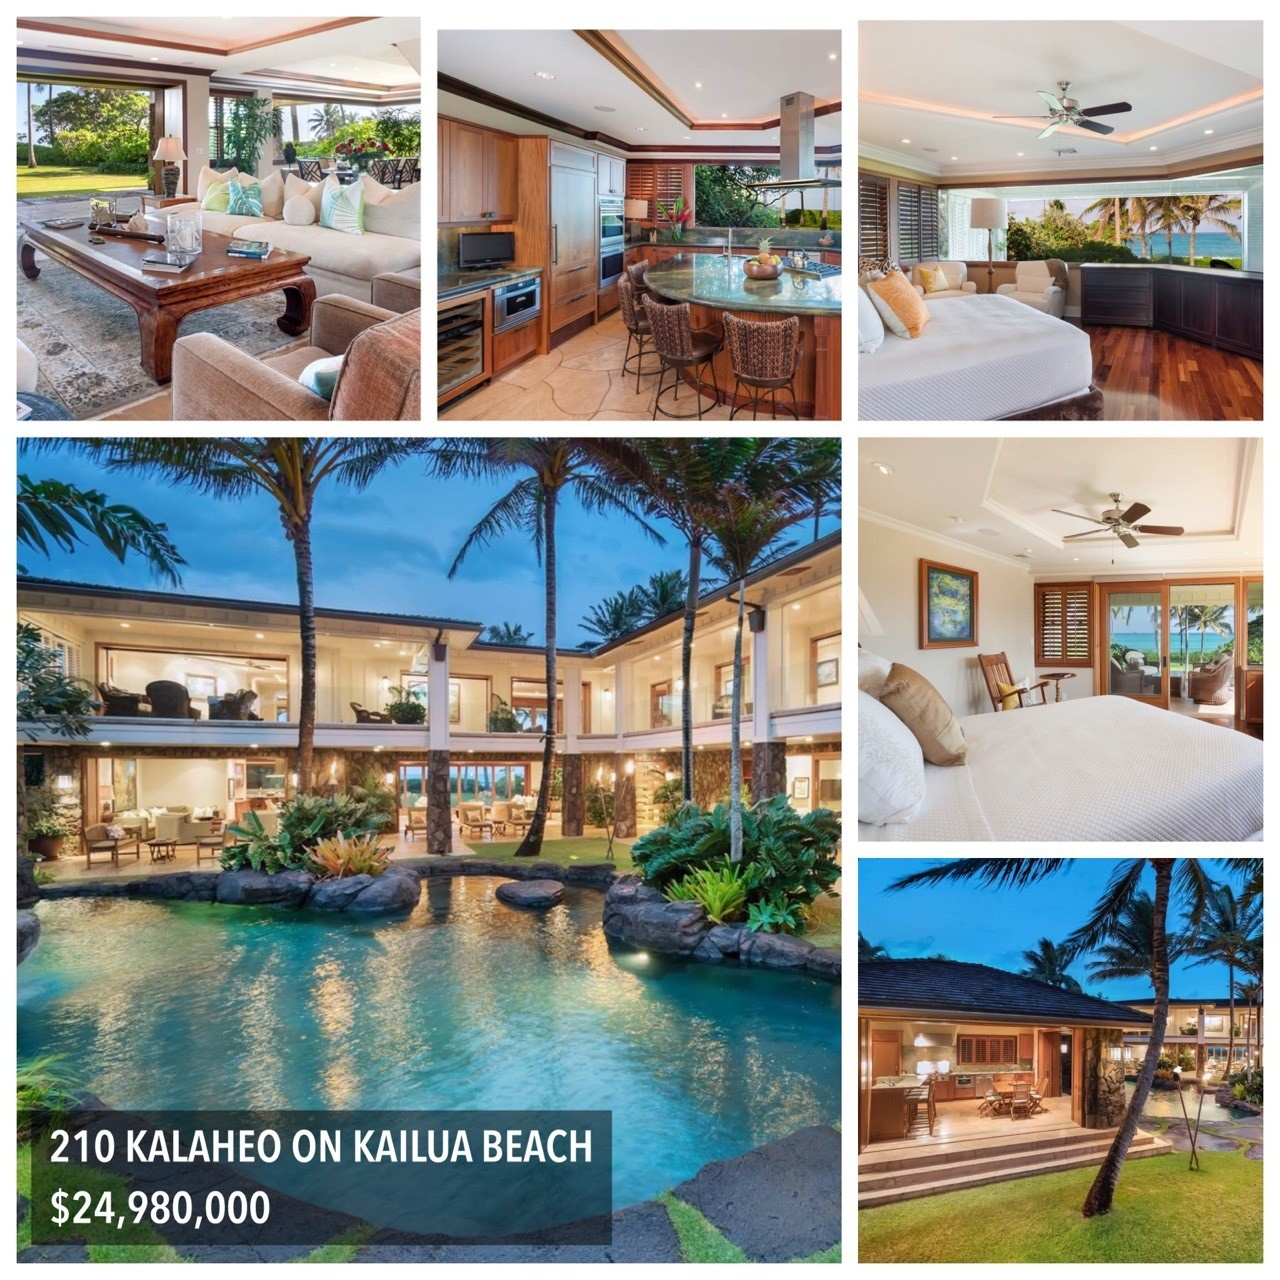 Click here for more 210 KALAHEO ON KAILUA BEACH $24,980,000 AMERICAN DOLLARCHANGE CURRENCY